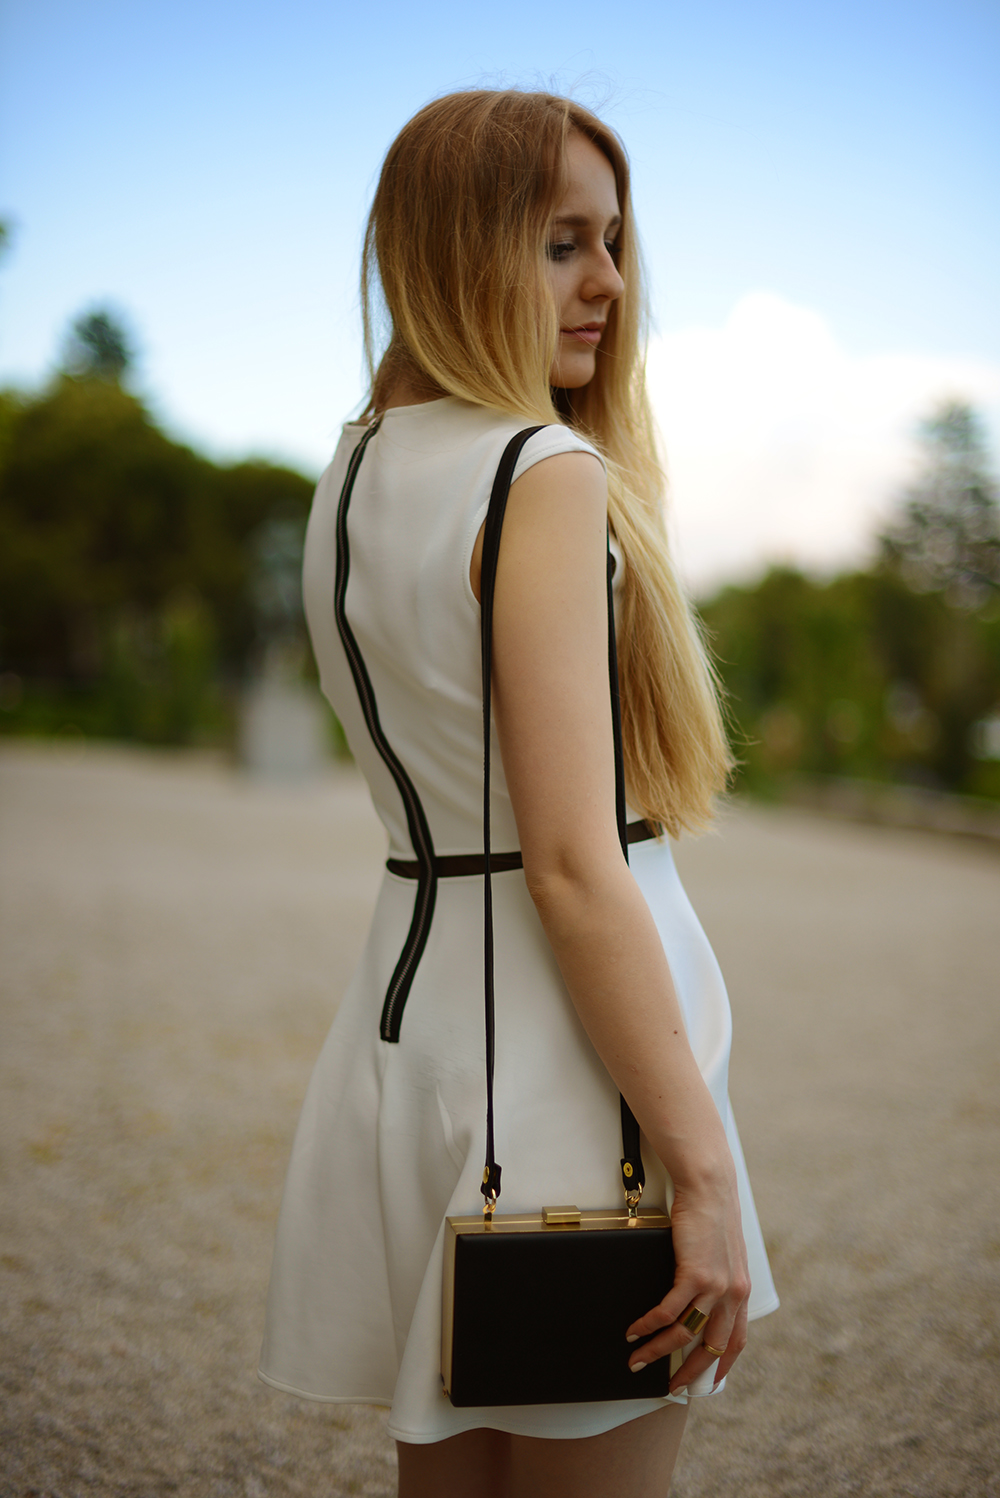 Tiphaine's Diary - Switzerland based fashion blog: WHITE DRESS